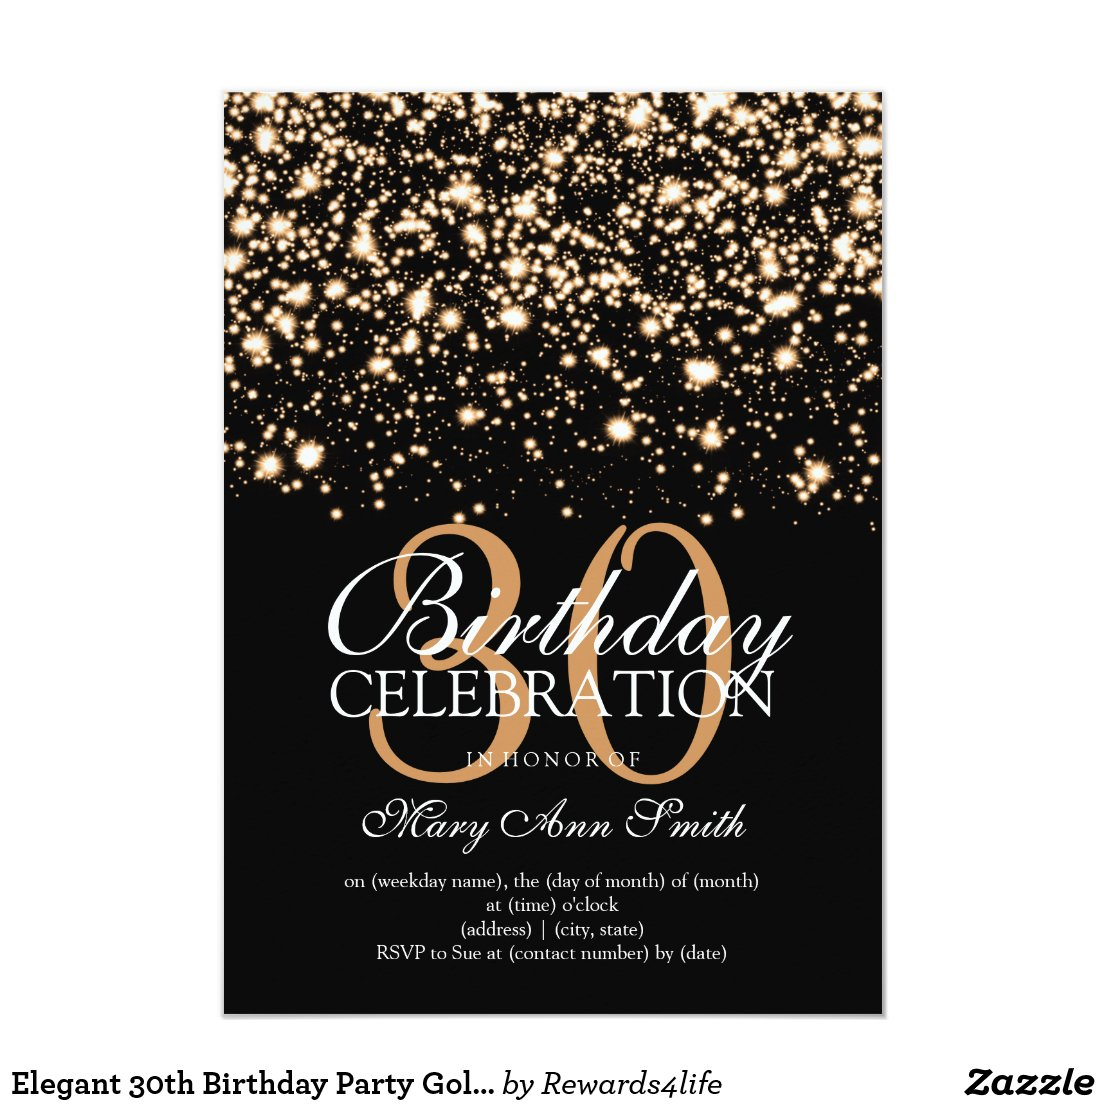 Elegant 30th Birthday Party Gold Midnight Glam Invitation